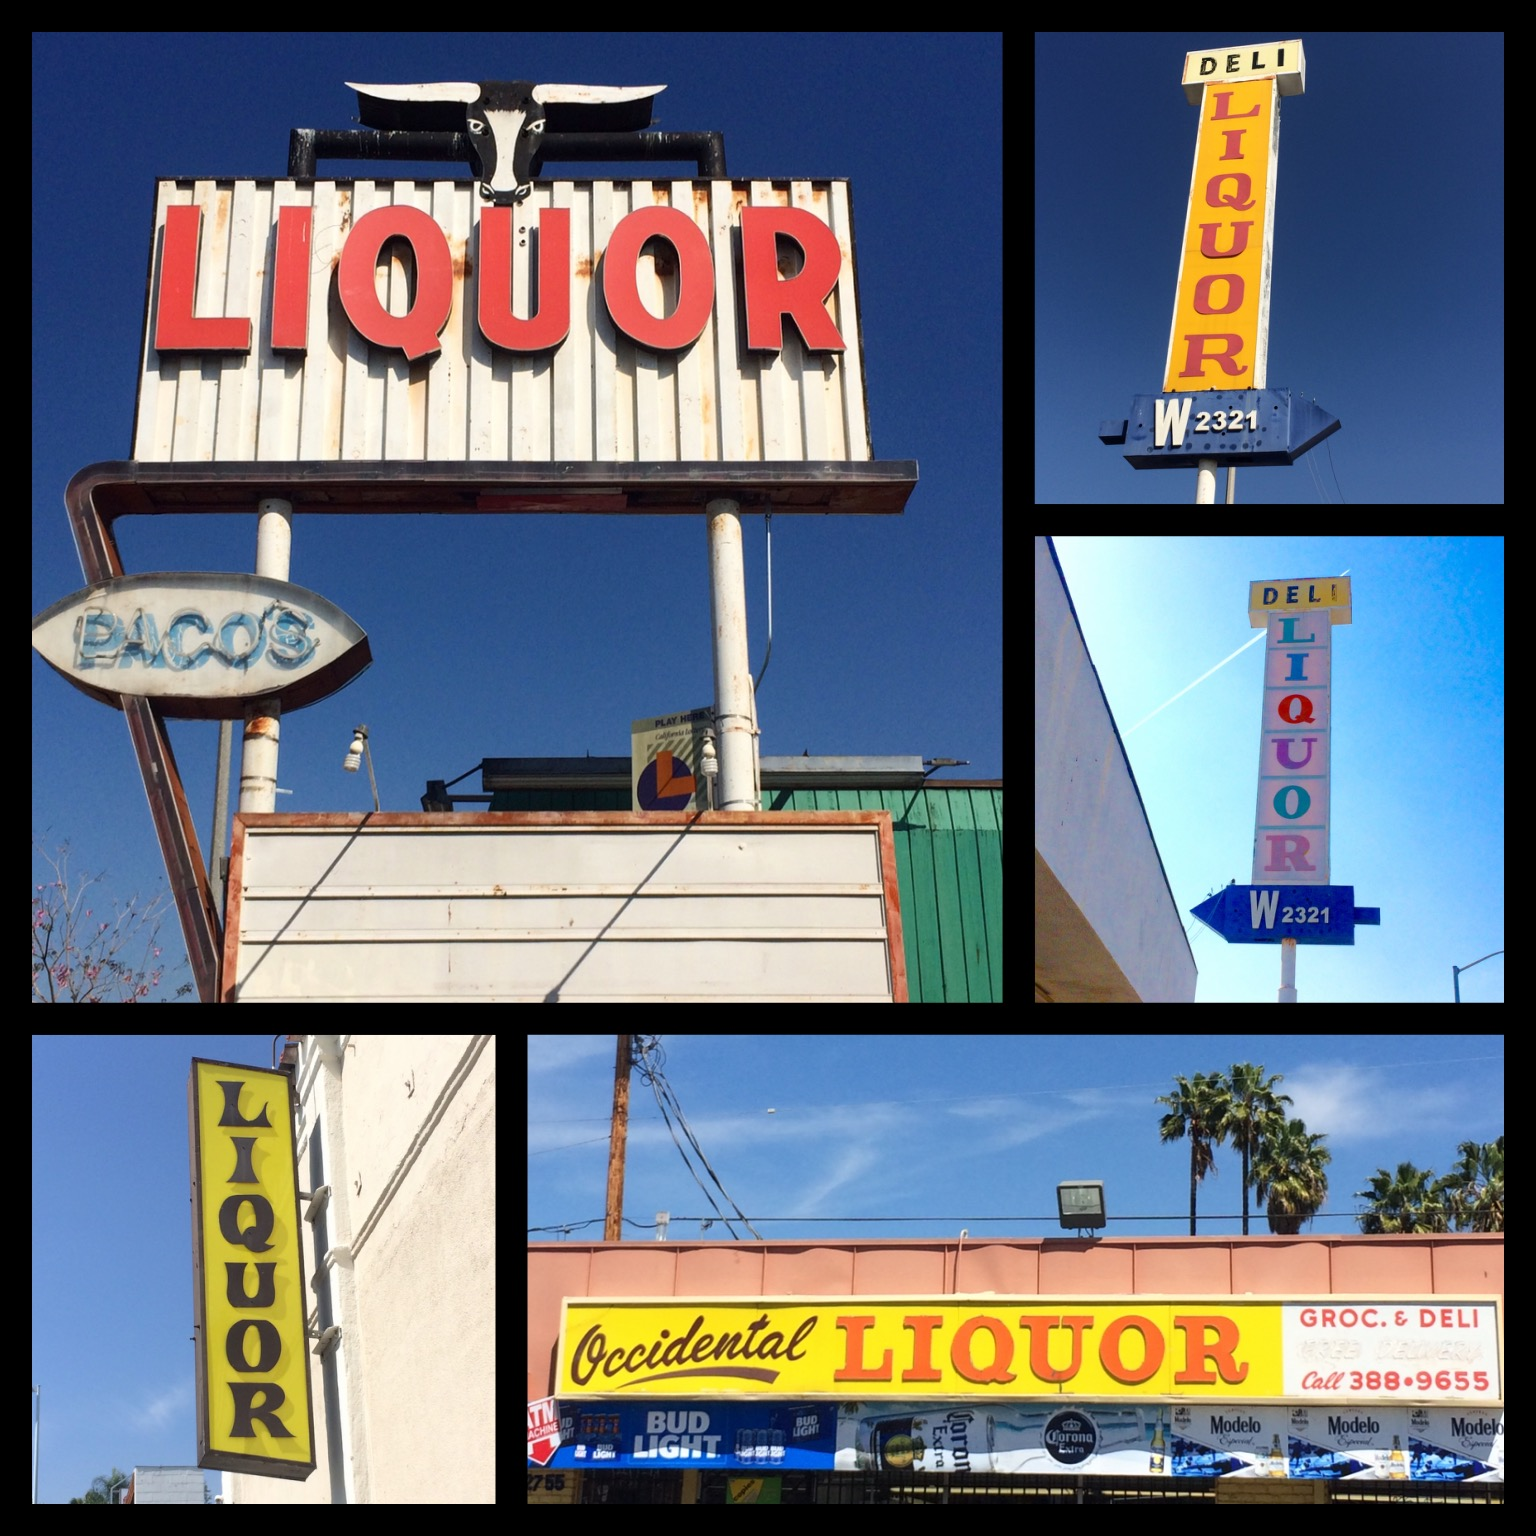 Paco's Liquor on E. 3rd Street in East L.A. was built in 1949; Two sides of a liquor store sign in East L.A.; Showcase Liquor on N. Lake Ave in Pasadena; Occidental Liquor on Beverly Blvd in the Rampart District.